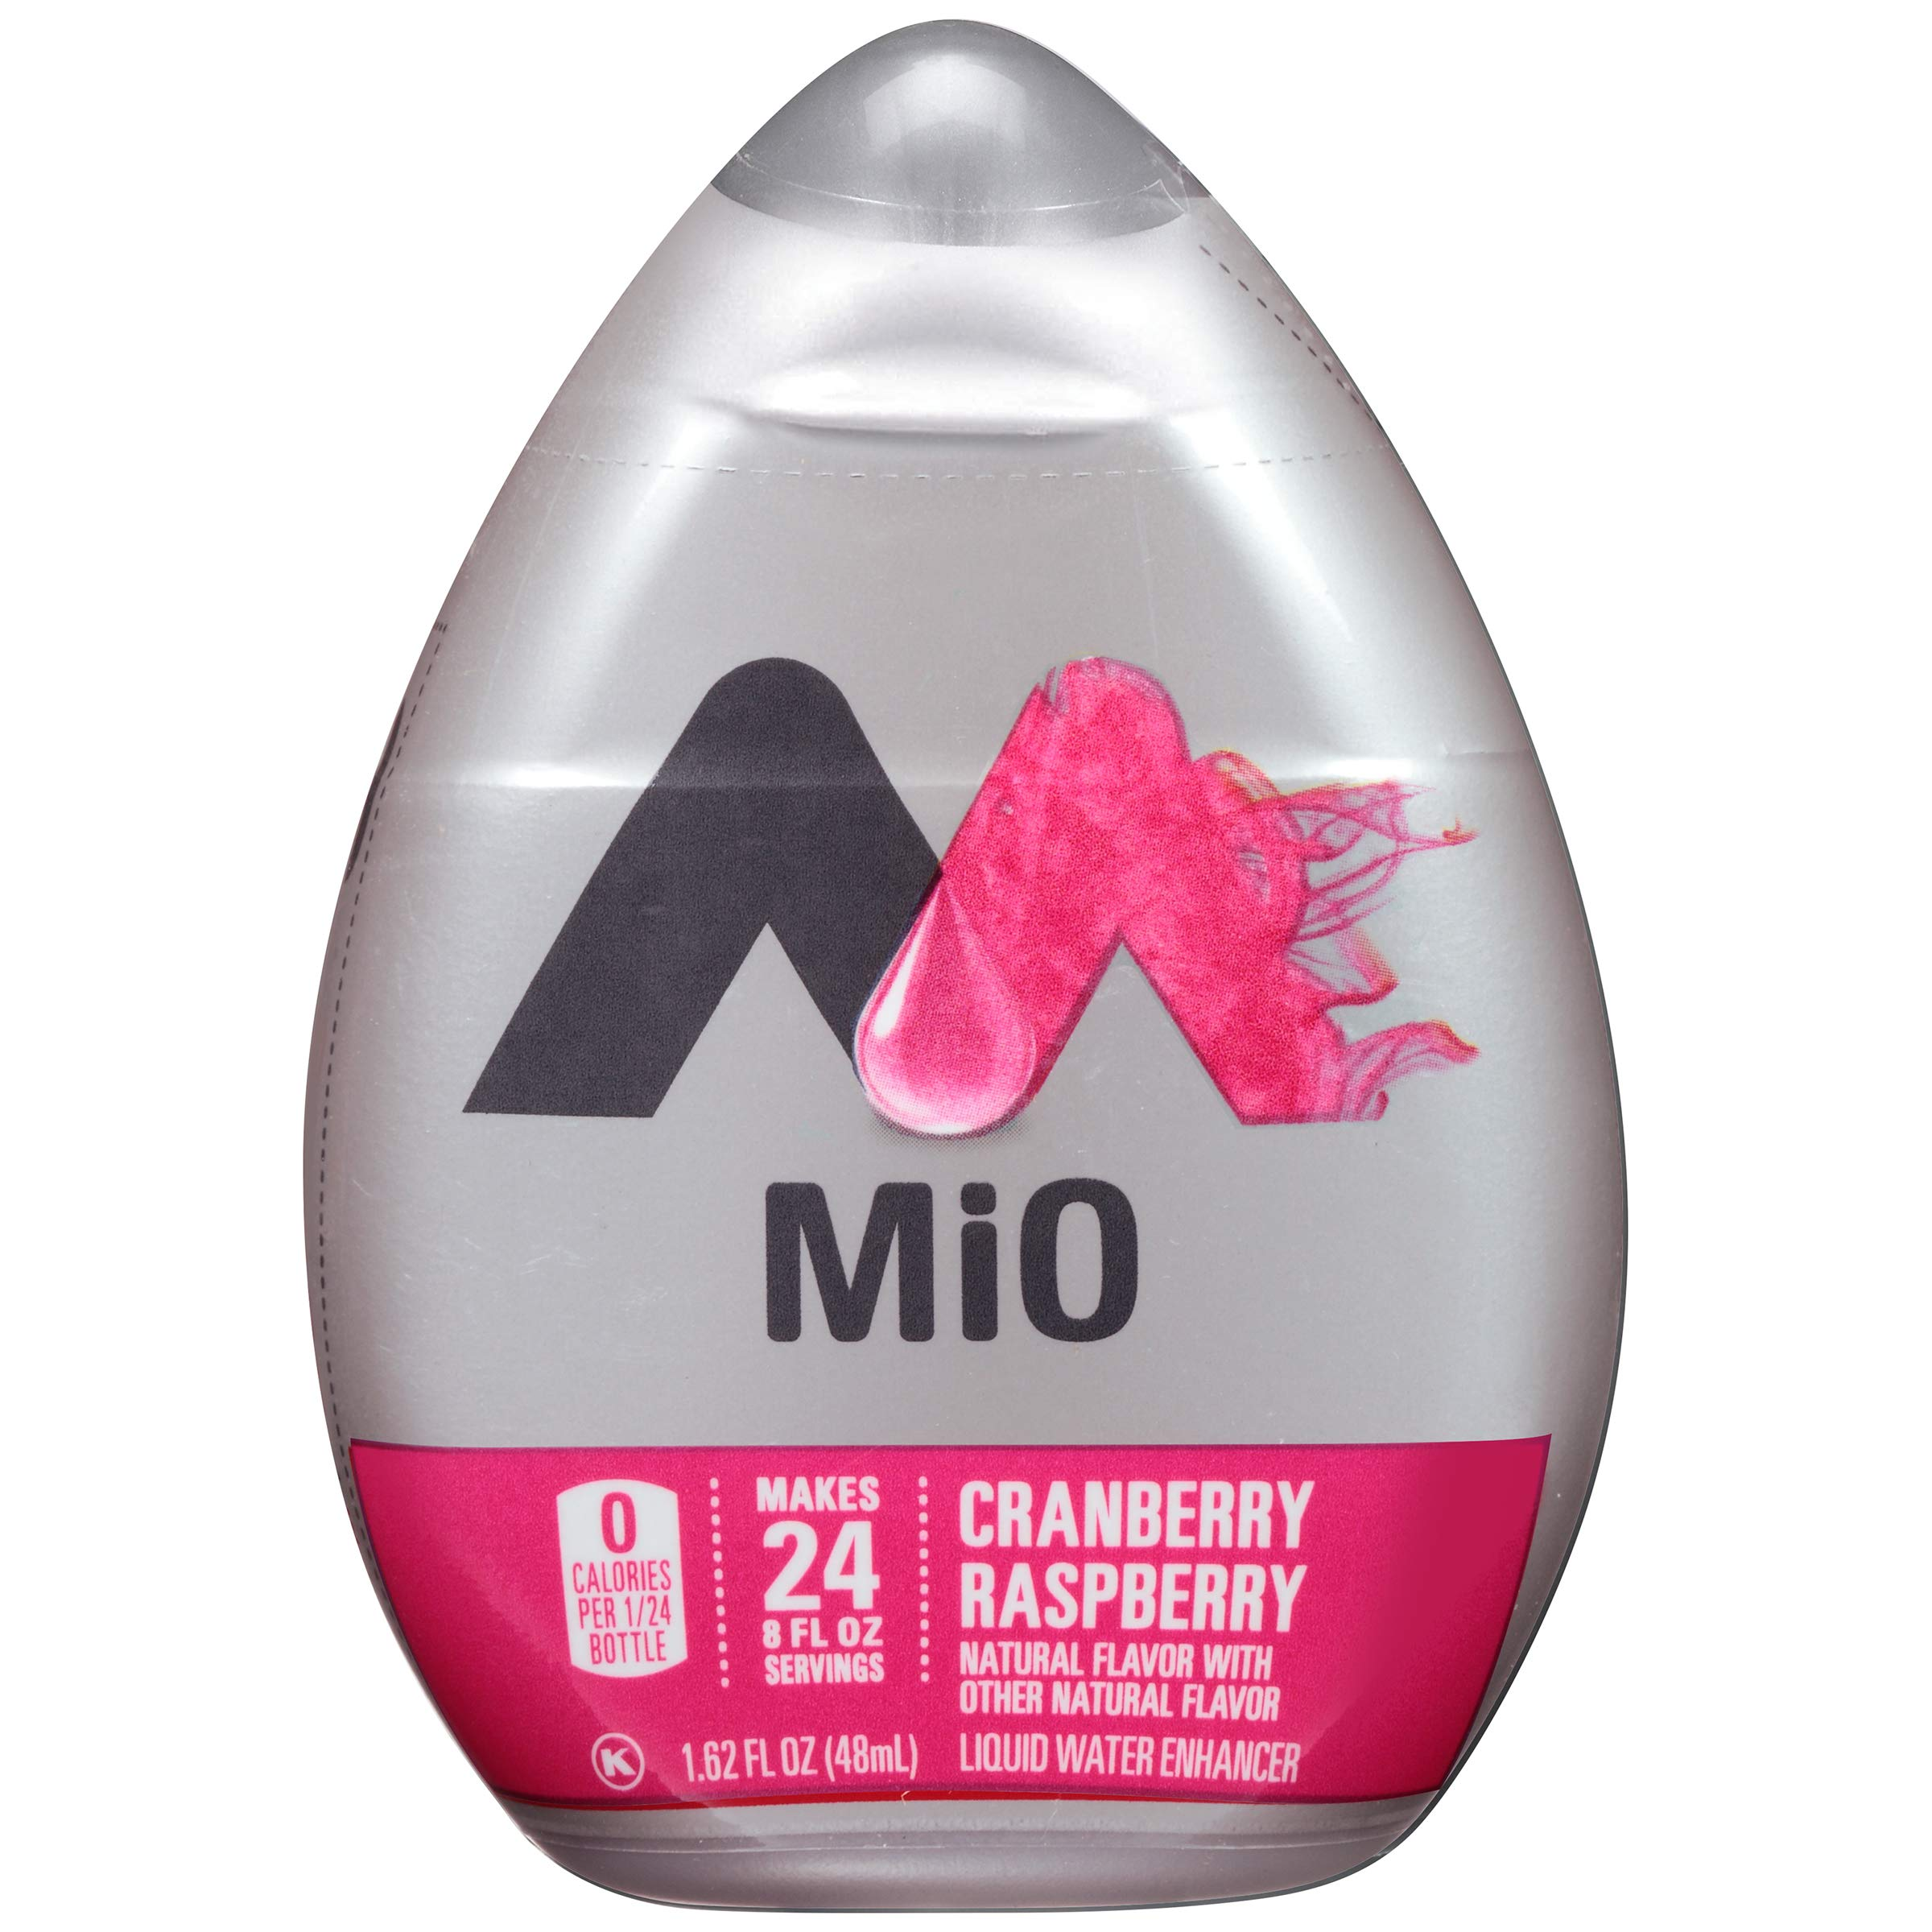 MiO Cranberry Raspberry Liquid Water Enhancer, 1.62 oz Bottles (Case of 12) by Mio